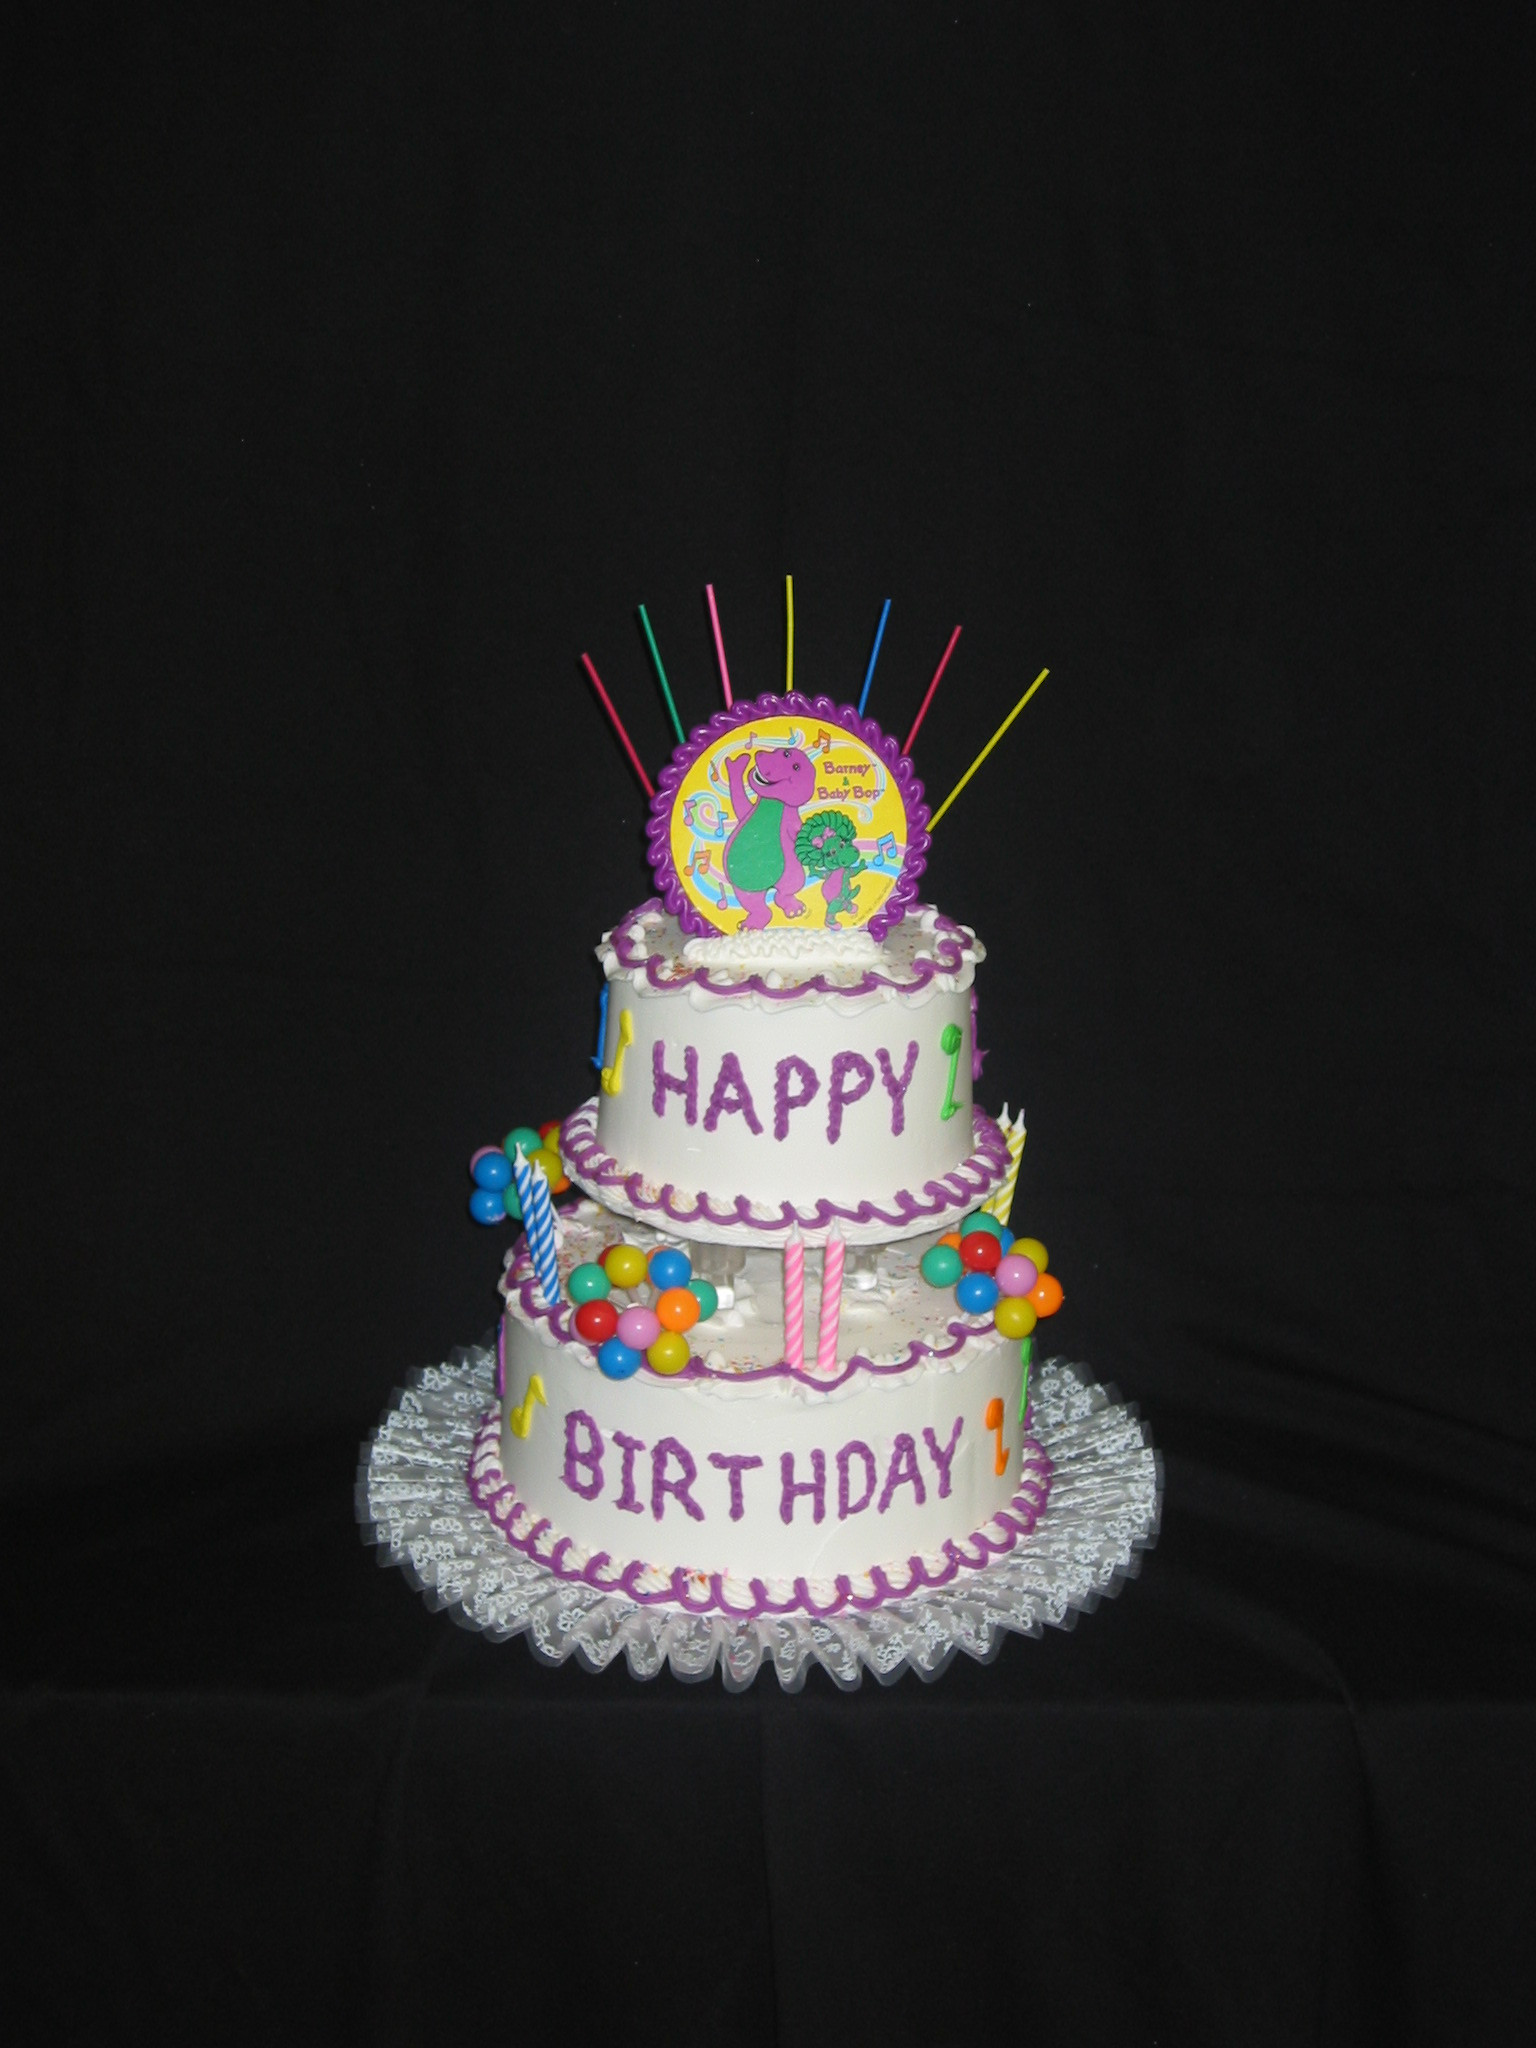 Best ideas about Birthday Cake Pics . Save or Pin Tiered Birthday Cakes Taylor s Bakery Now.